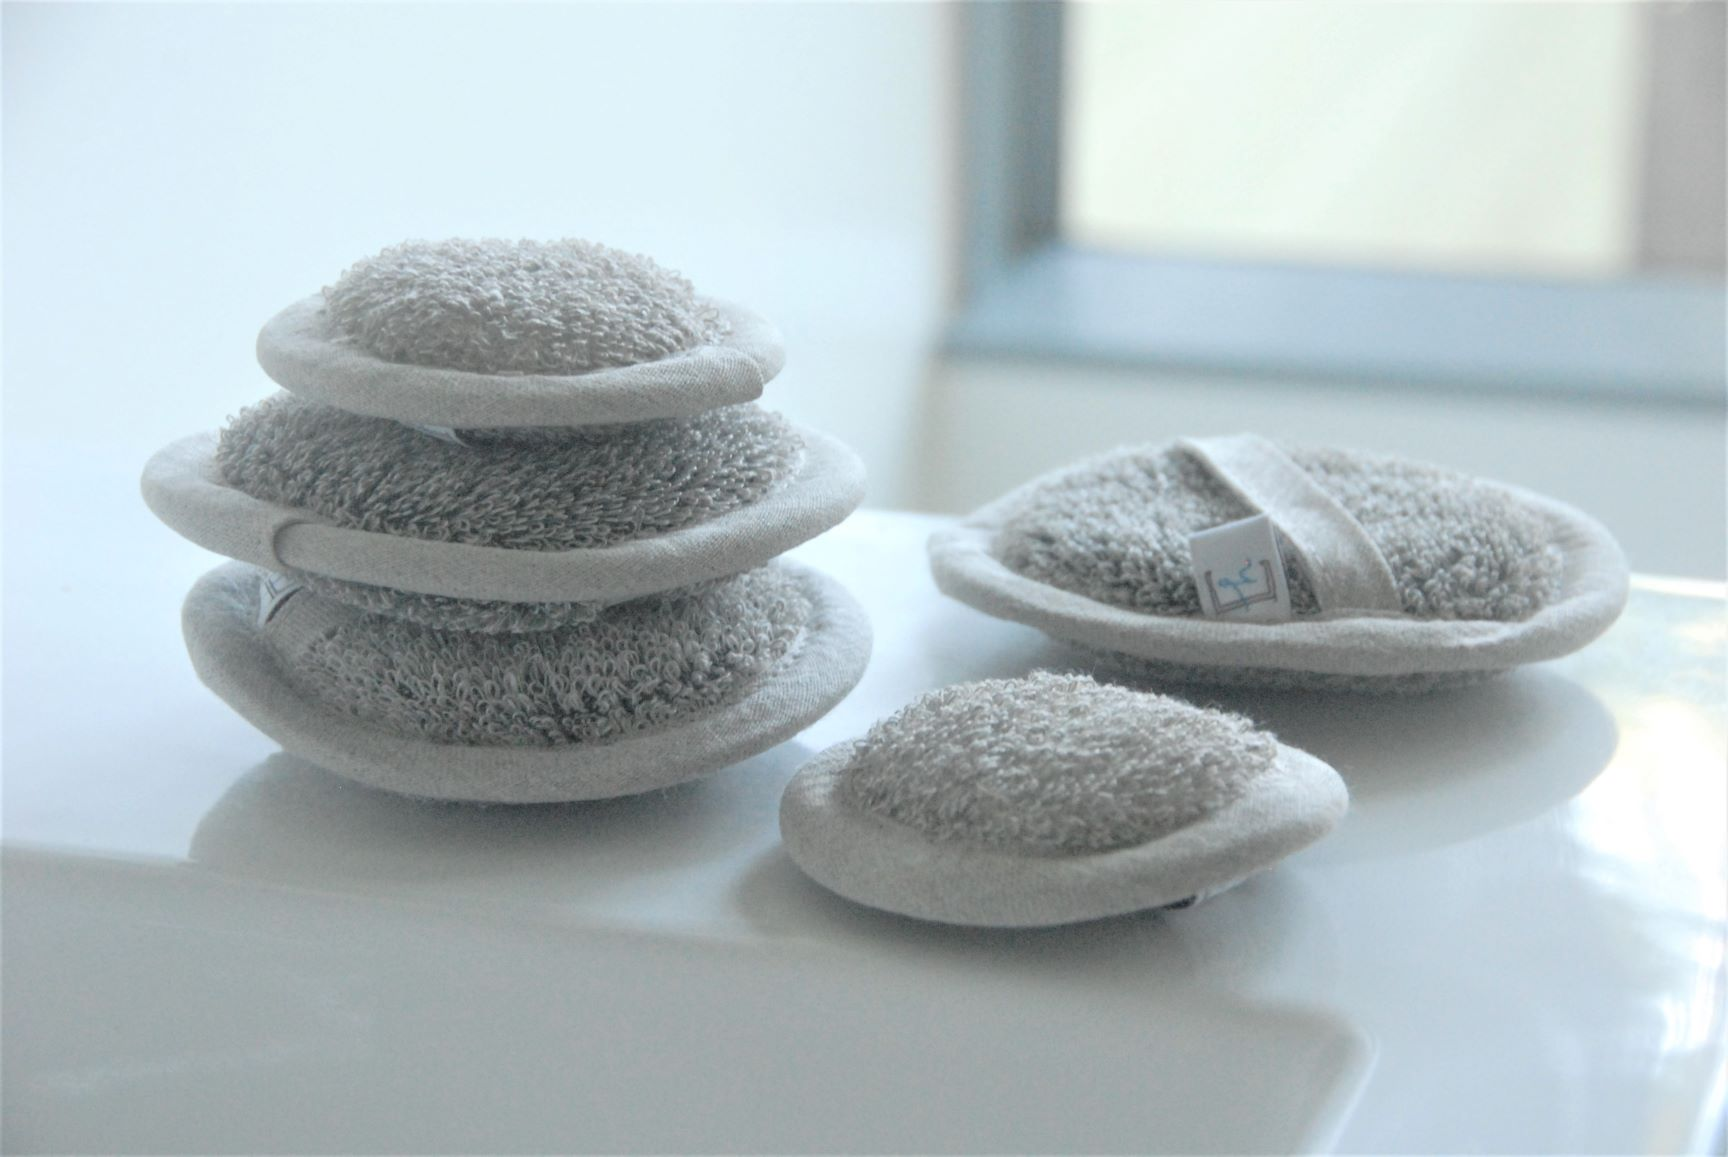 Linen Face Sponges - Heaven in Earth